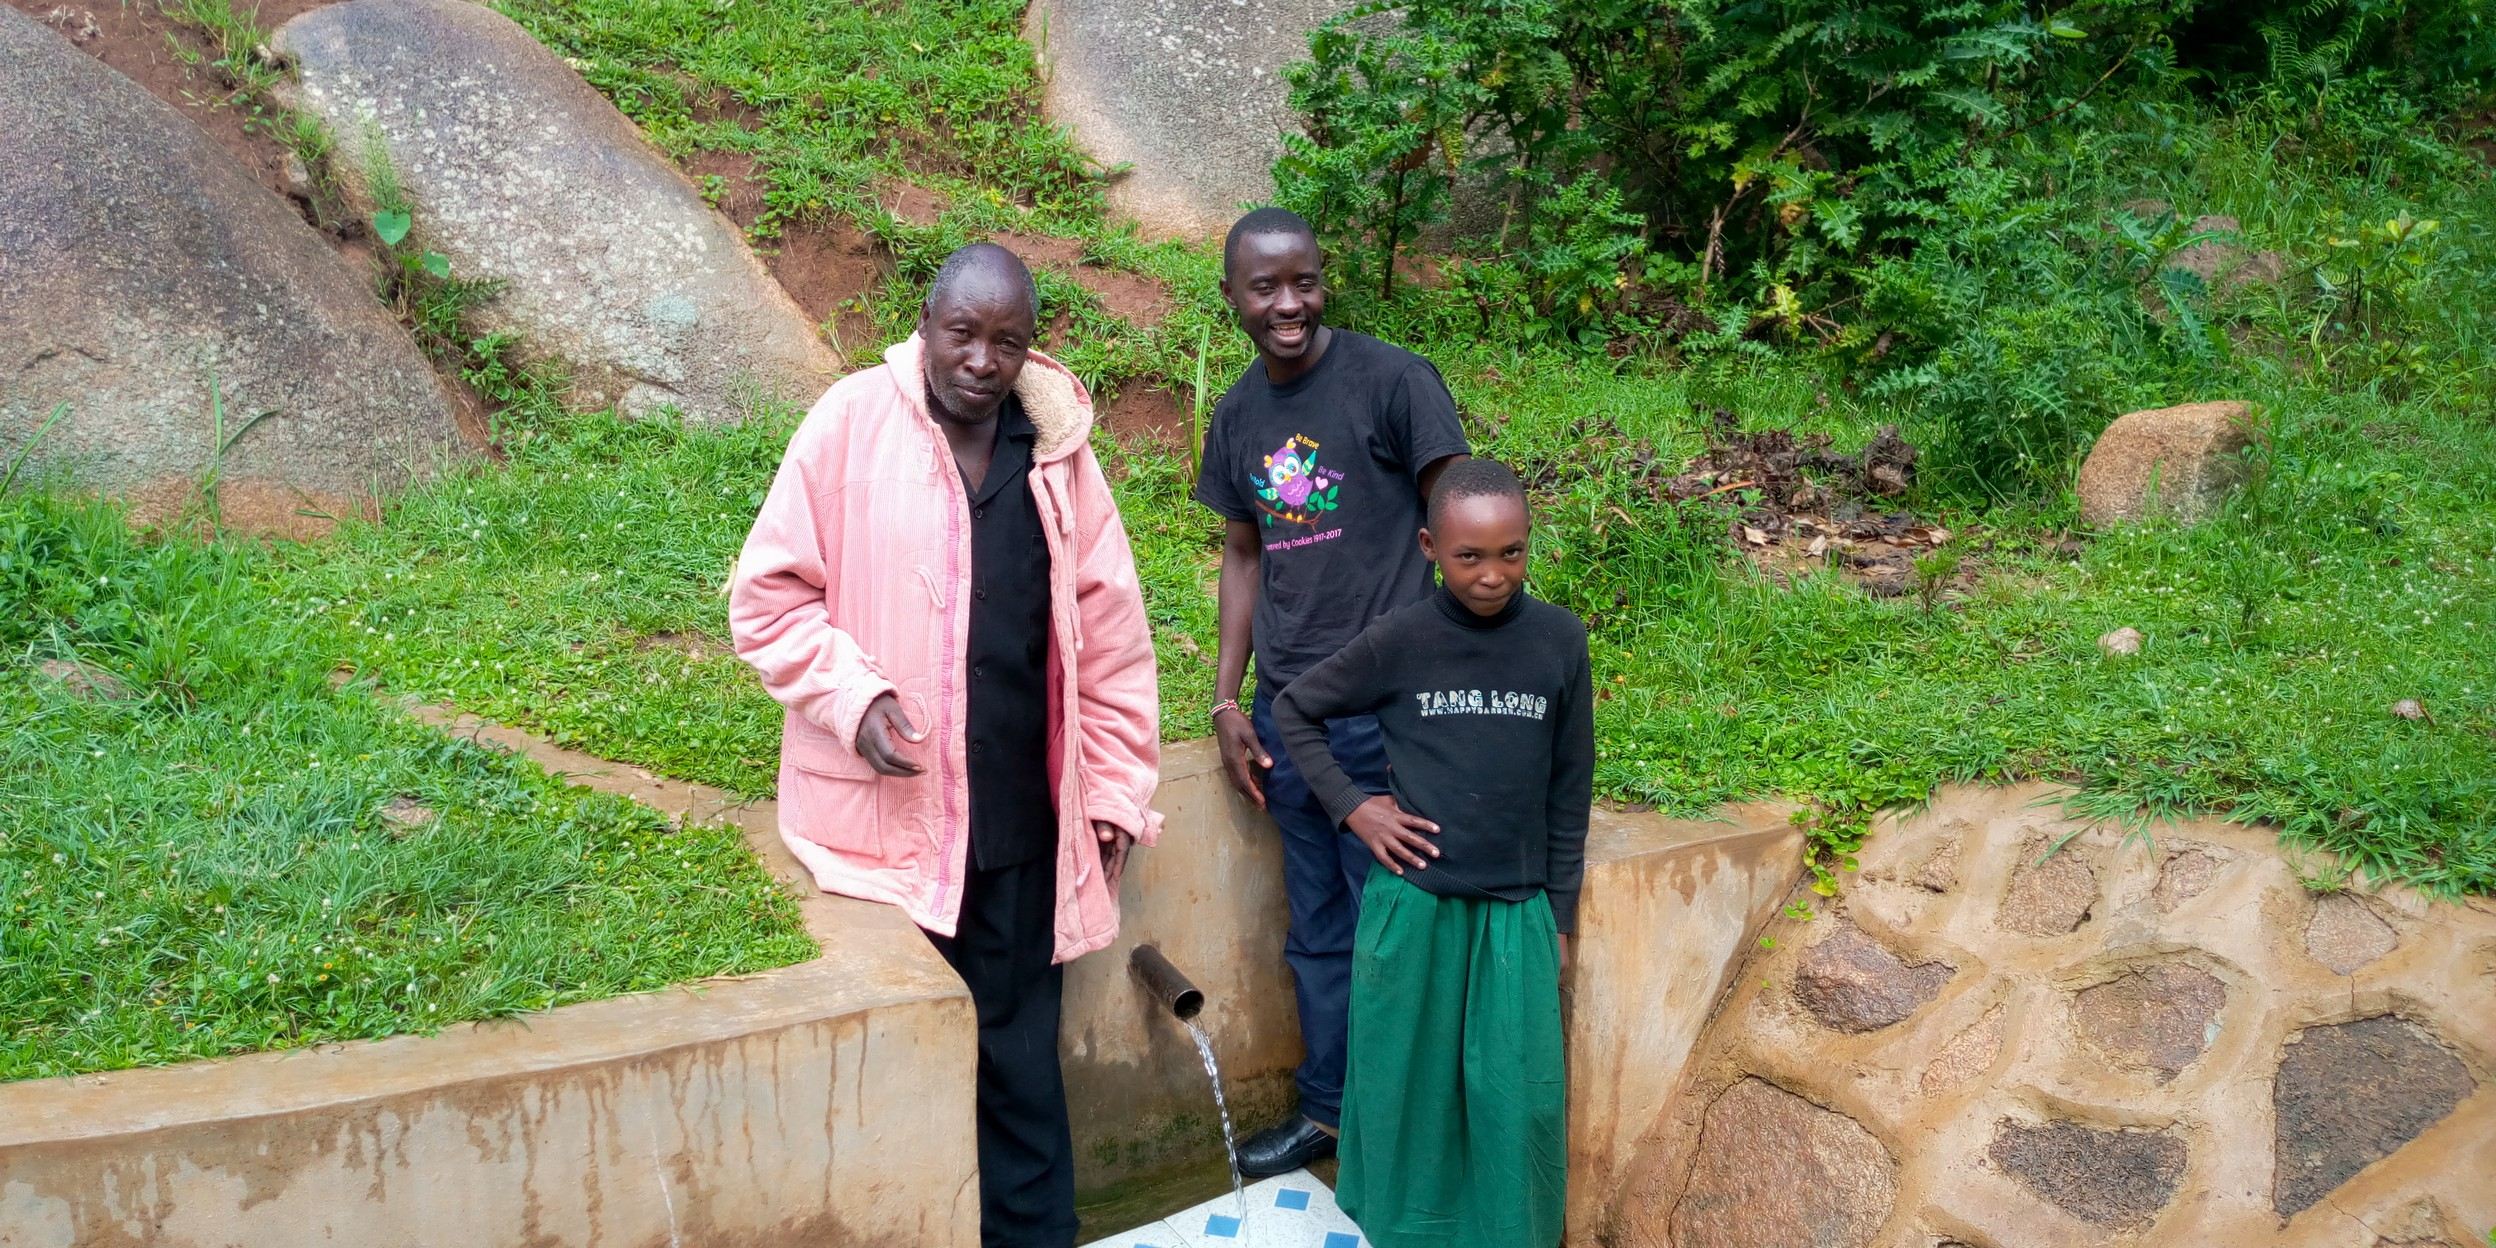 The Water Project : 5-kenya18093-joseph-with-field-officer-erick-wagaka-and-stacy